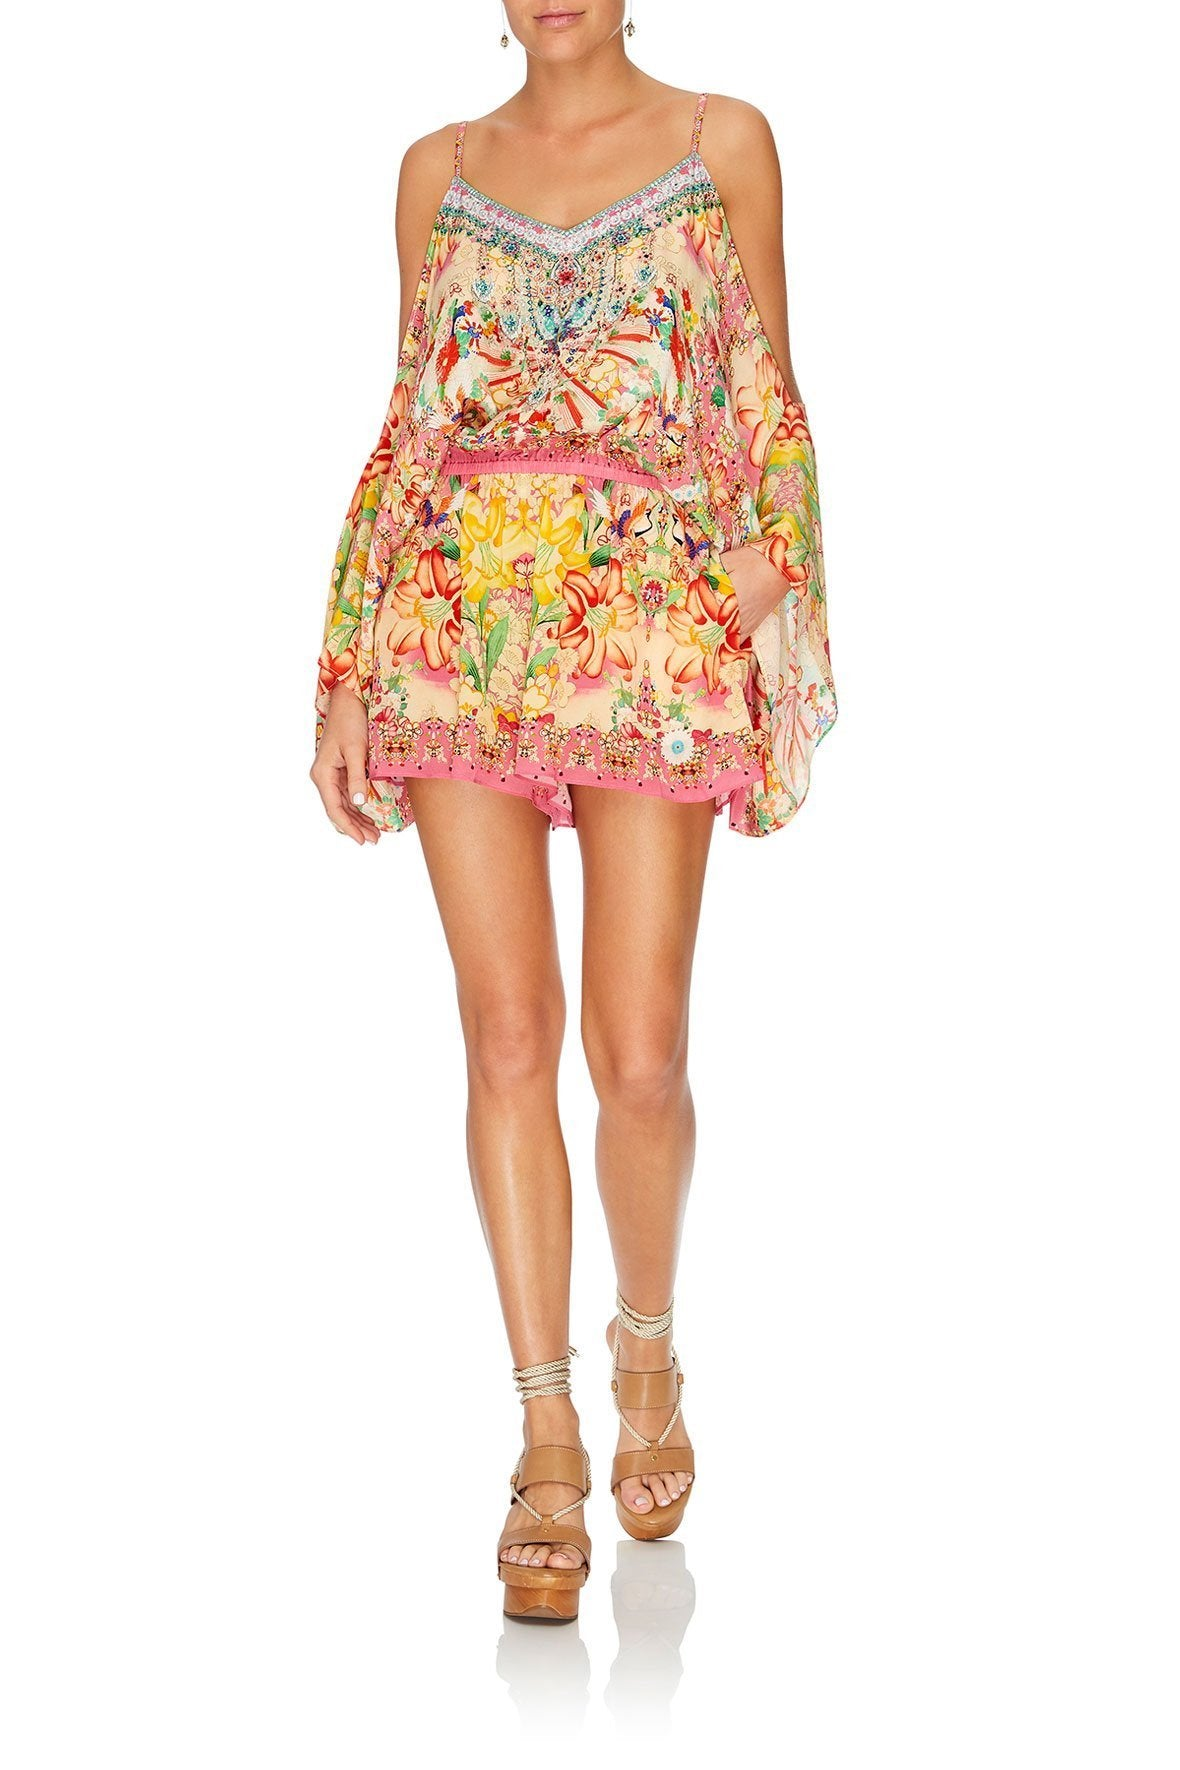 DROP SHOULDER PLAYSUIT KIMONO KISSES